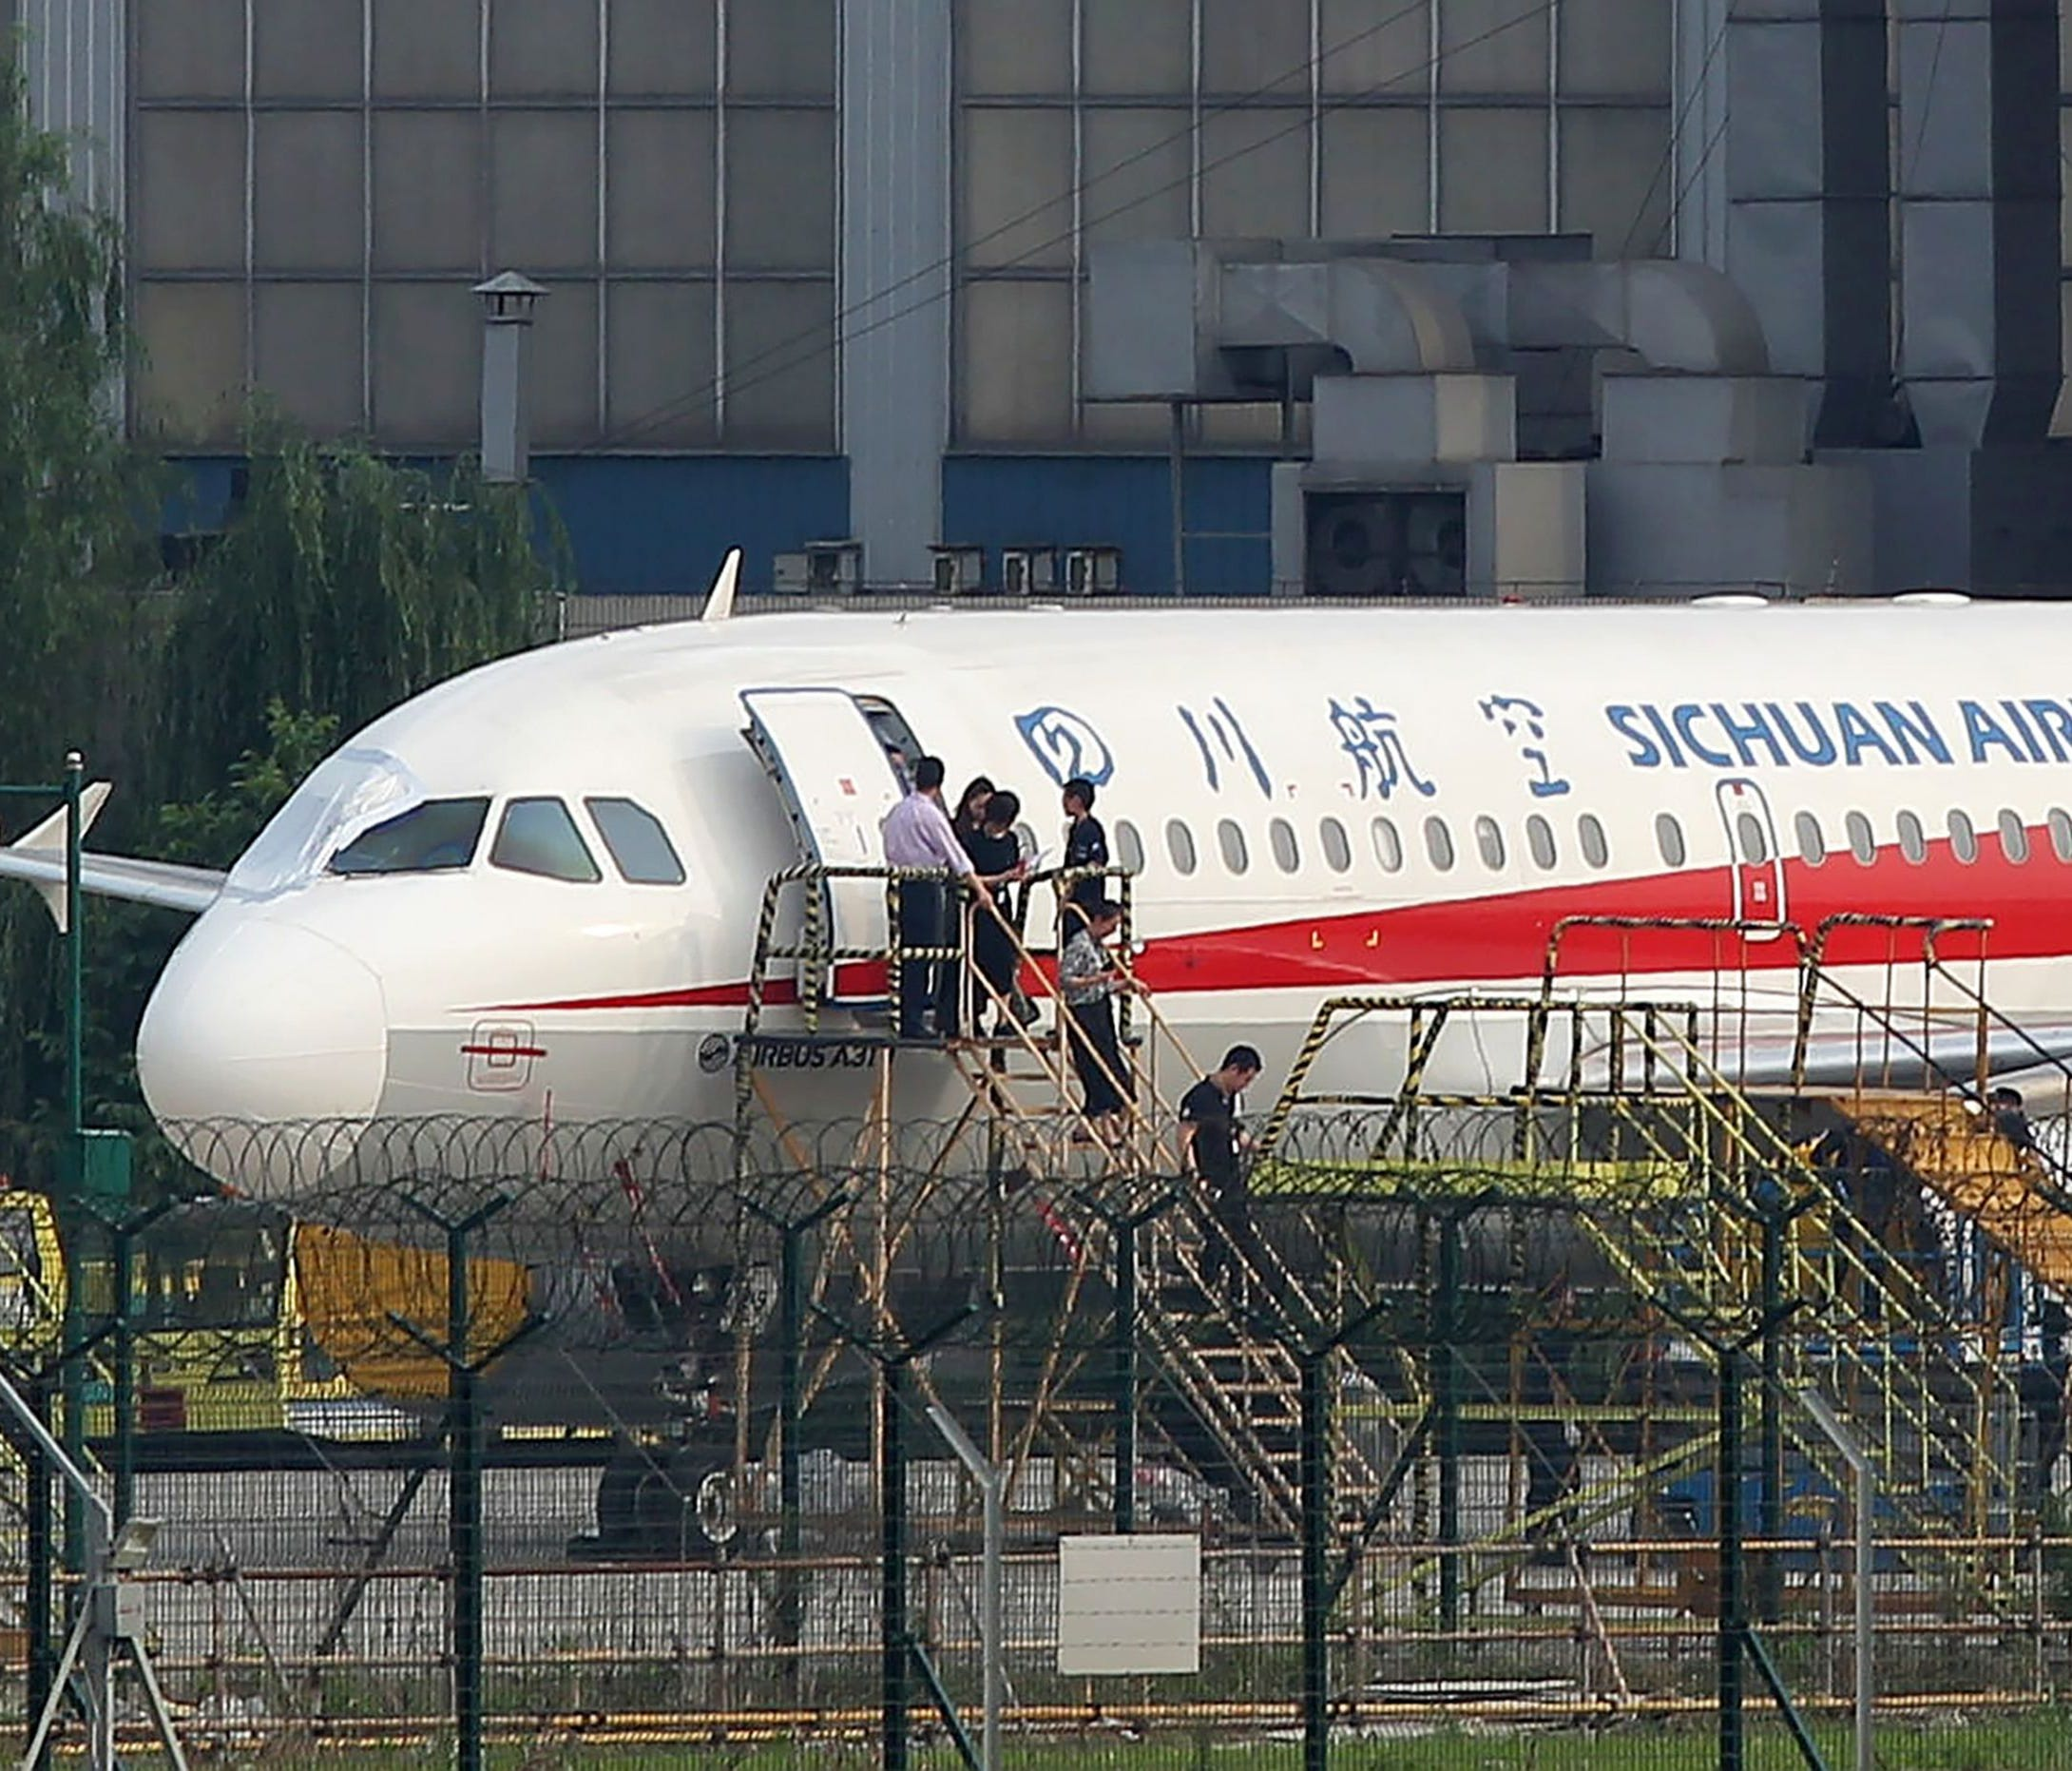 Sichuan Airlines employees check an Airbus A319 on May 14, 2018, after an emergency landing, as a broken cockpit window is covered, in Chengdu in China's northwestern Sichuan province.   The pilot who made an emergency landing in southwest China after